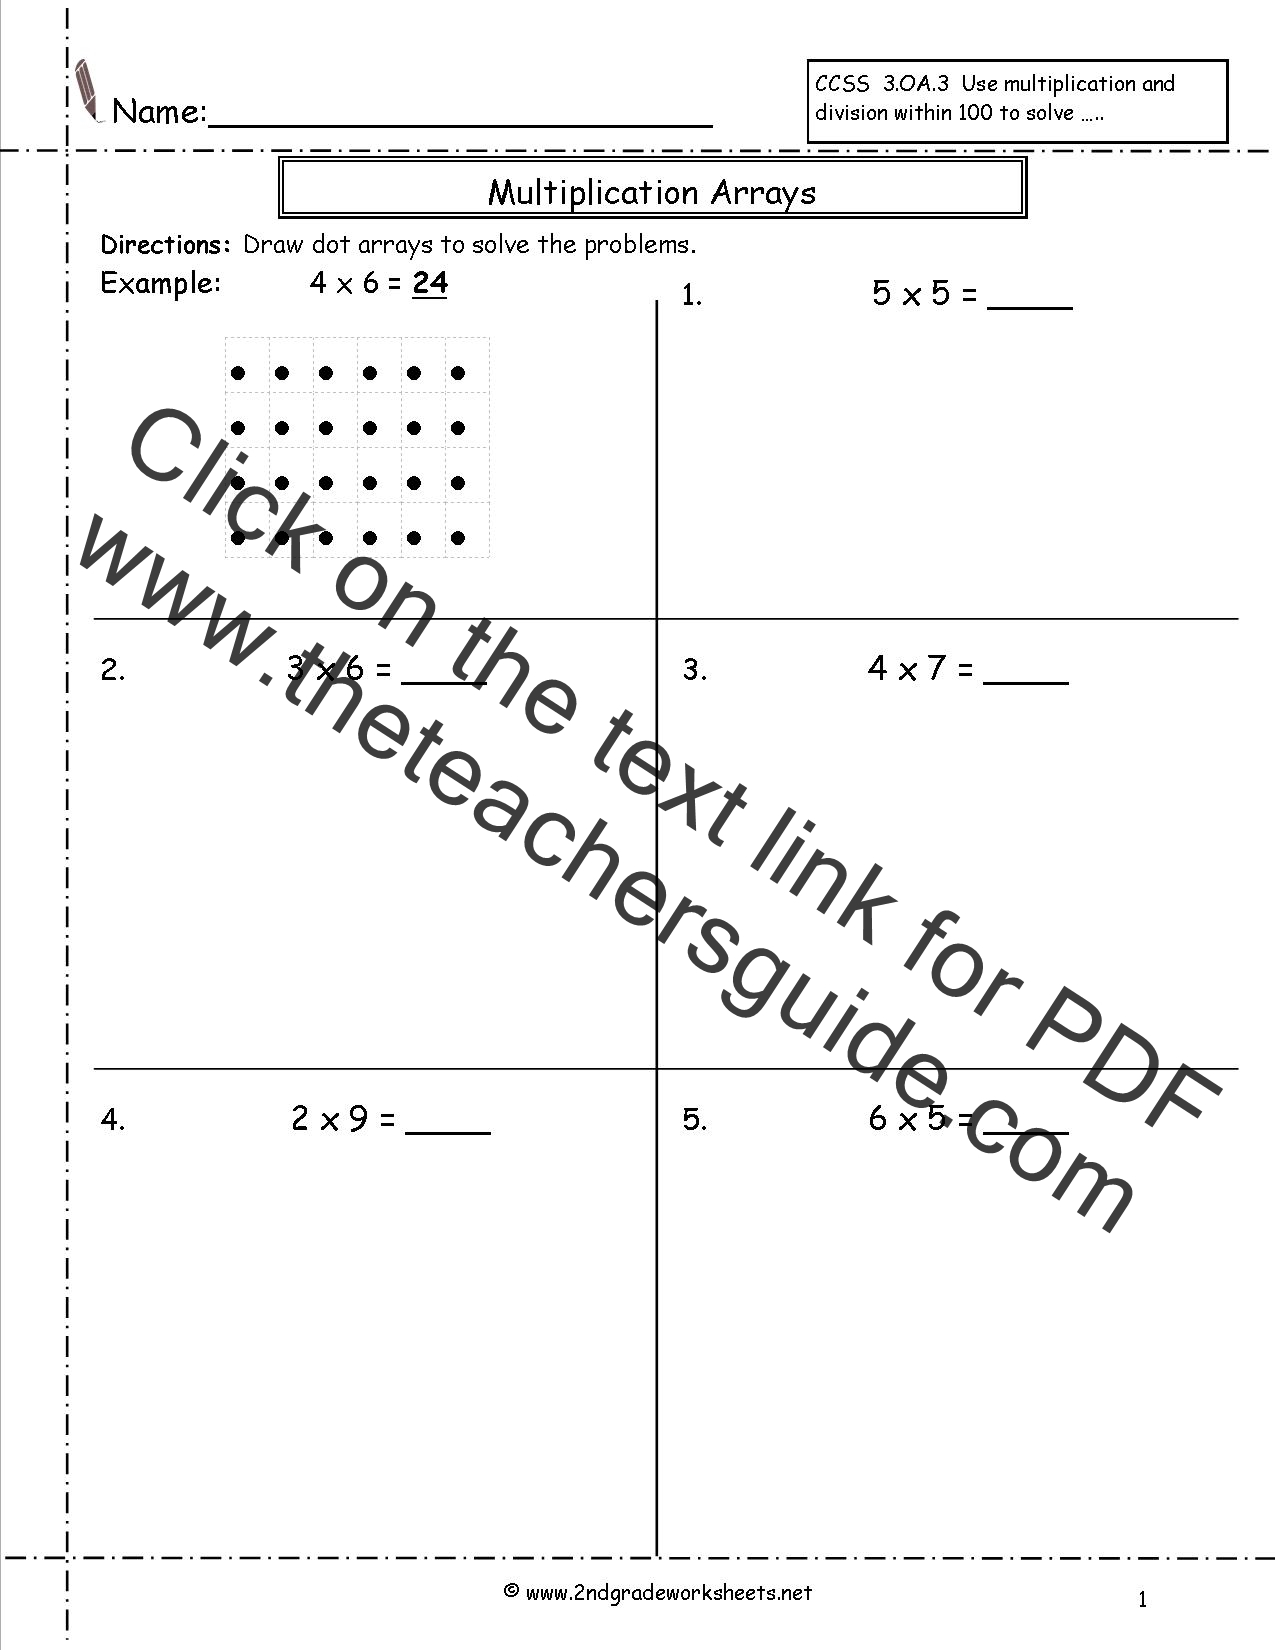 Printables Multiplication Worksheets For 2nd Grade multiplication arrays worksheets array worksheets